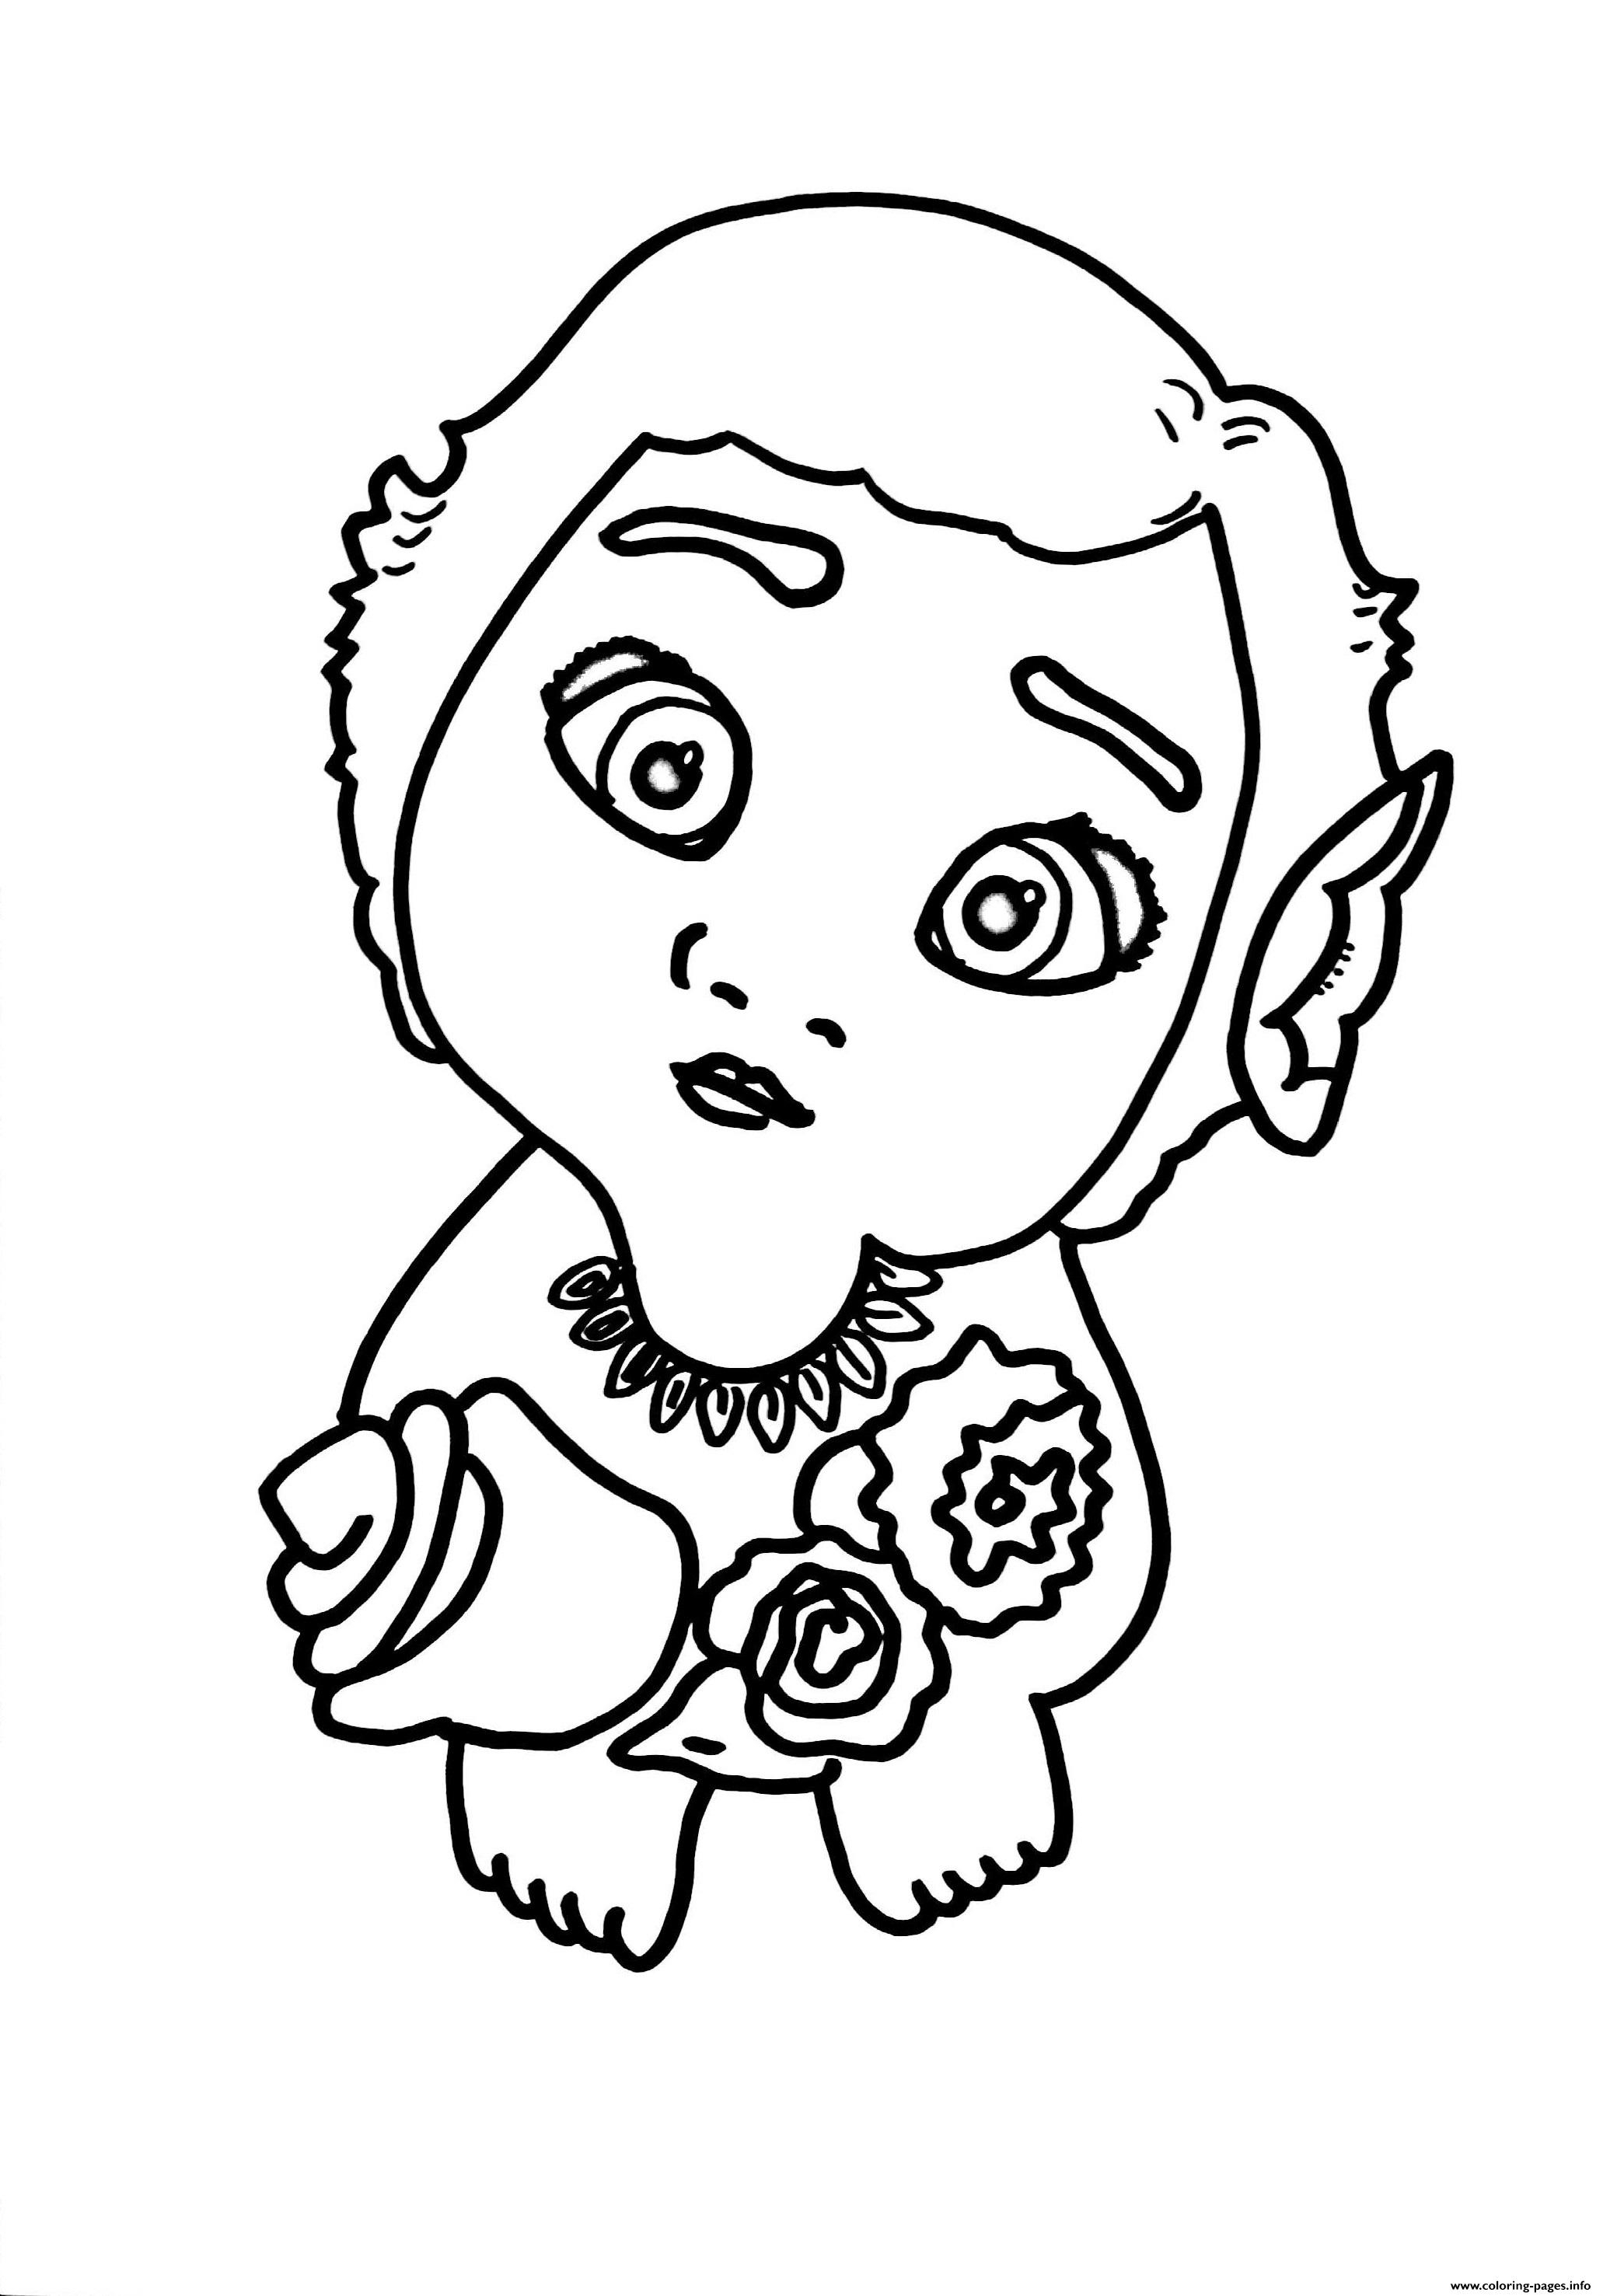 moana coloring pages free - baby moana with flowers printable coloring pages book